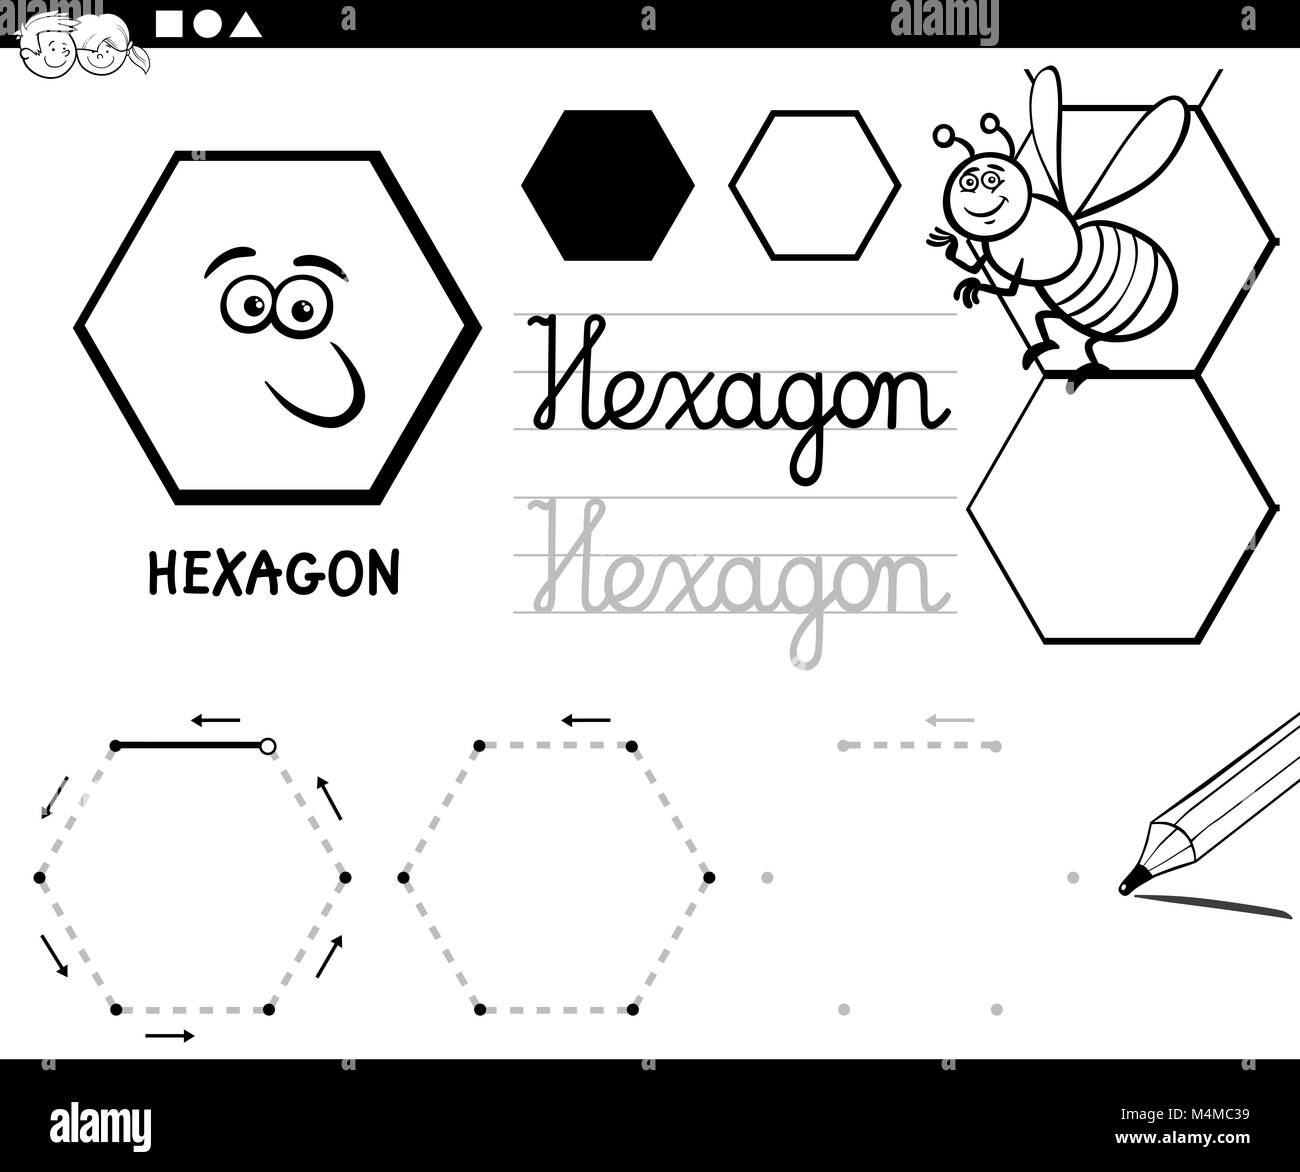 Hexagon Basic Geometric Shapes Coloring Page Stock Photo